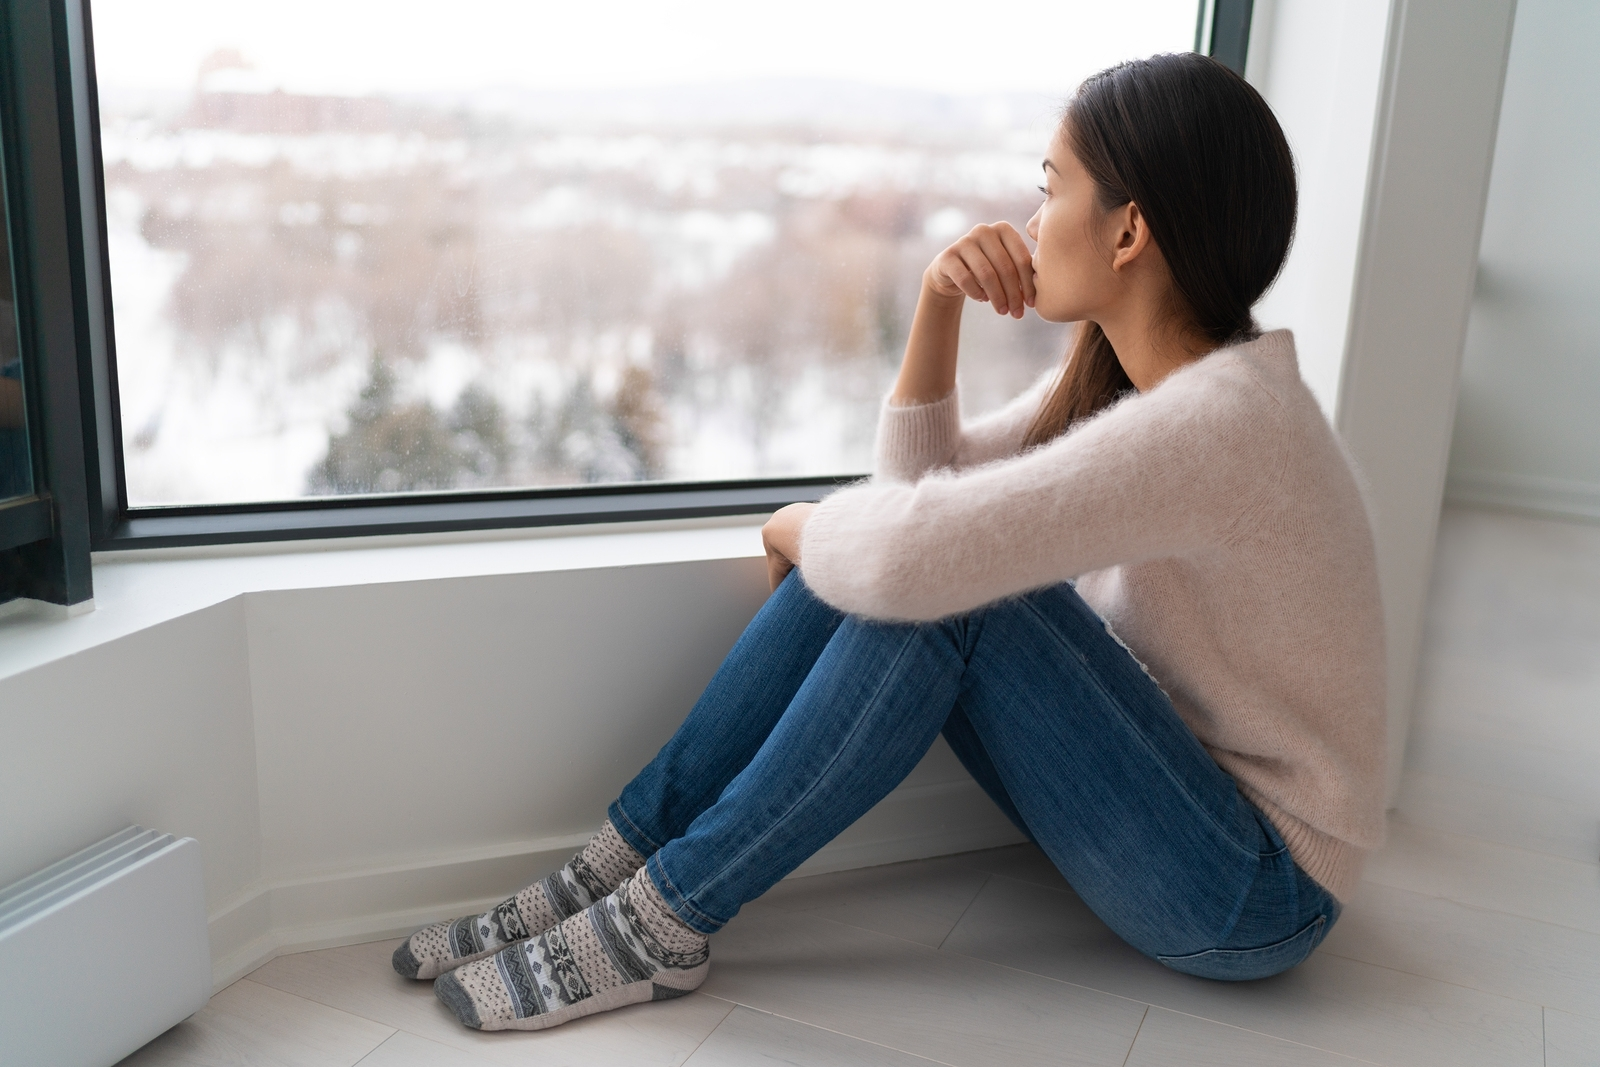 Young woman appears depressed as she sits on the floor looking out the window. She is thinking about past trauma. Therapyology offers trauma therapy in West Bloomfield, MI. Contact us for trauma counseling, trauma informed therapy, and more. Contact us to get in touch with a trauma therapist online in michigan.